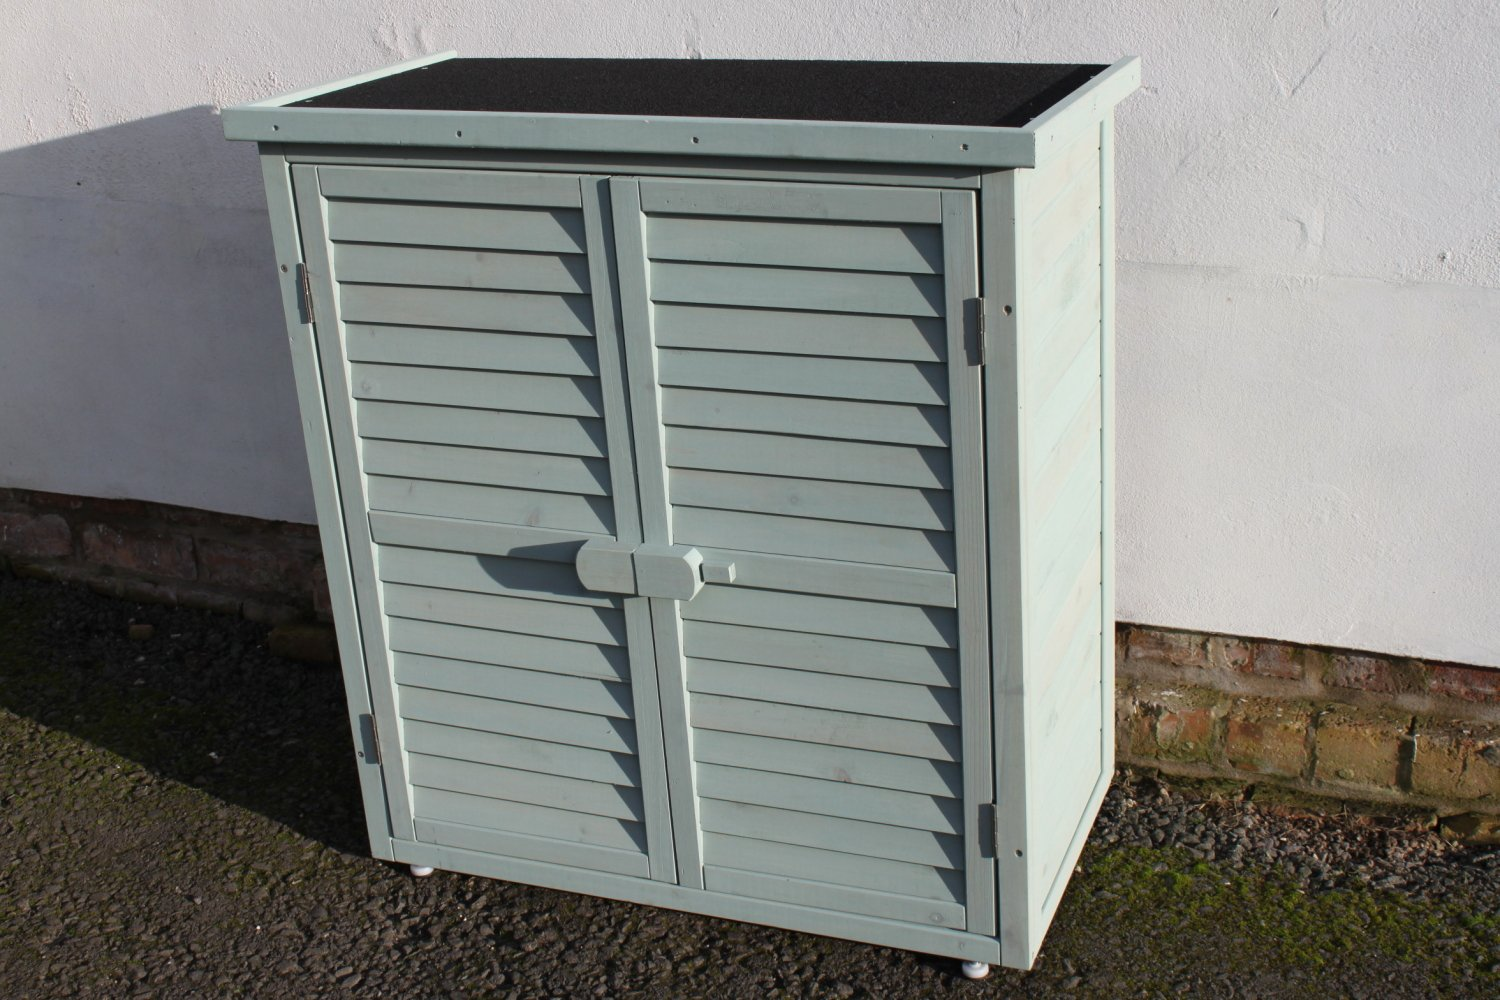 Outdoor Garden Wooden Storage Cabinet or Tool Shed In Blue/Green